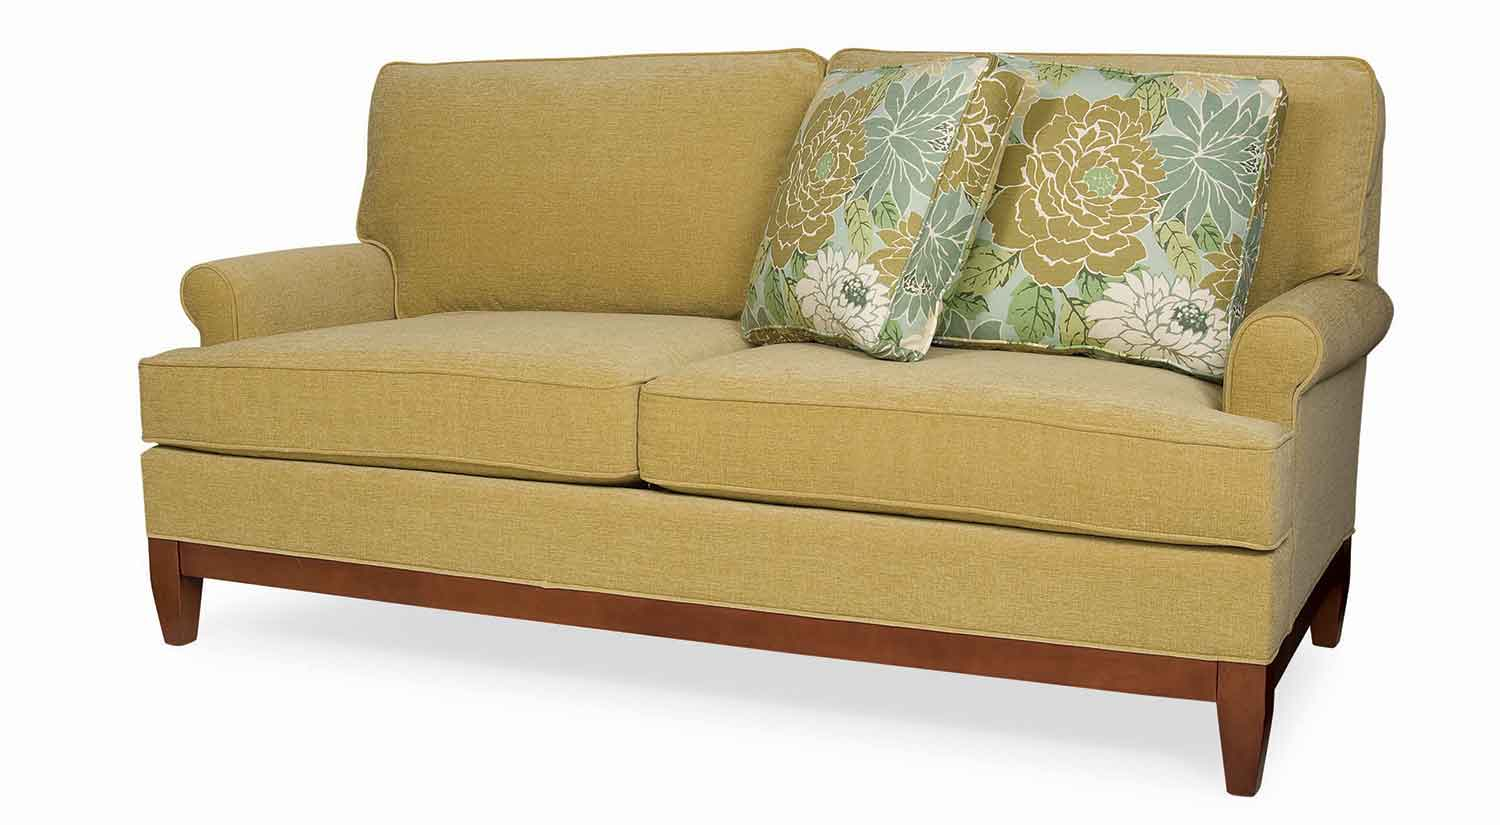 Circle Furniture - Camden Apartment Sofa | Small Sofas Boston ...